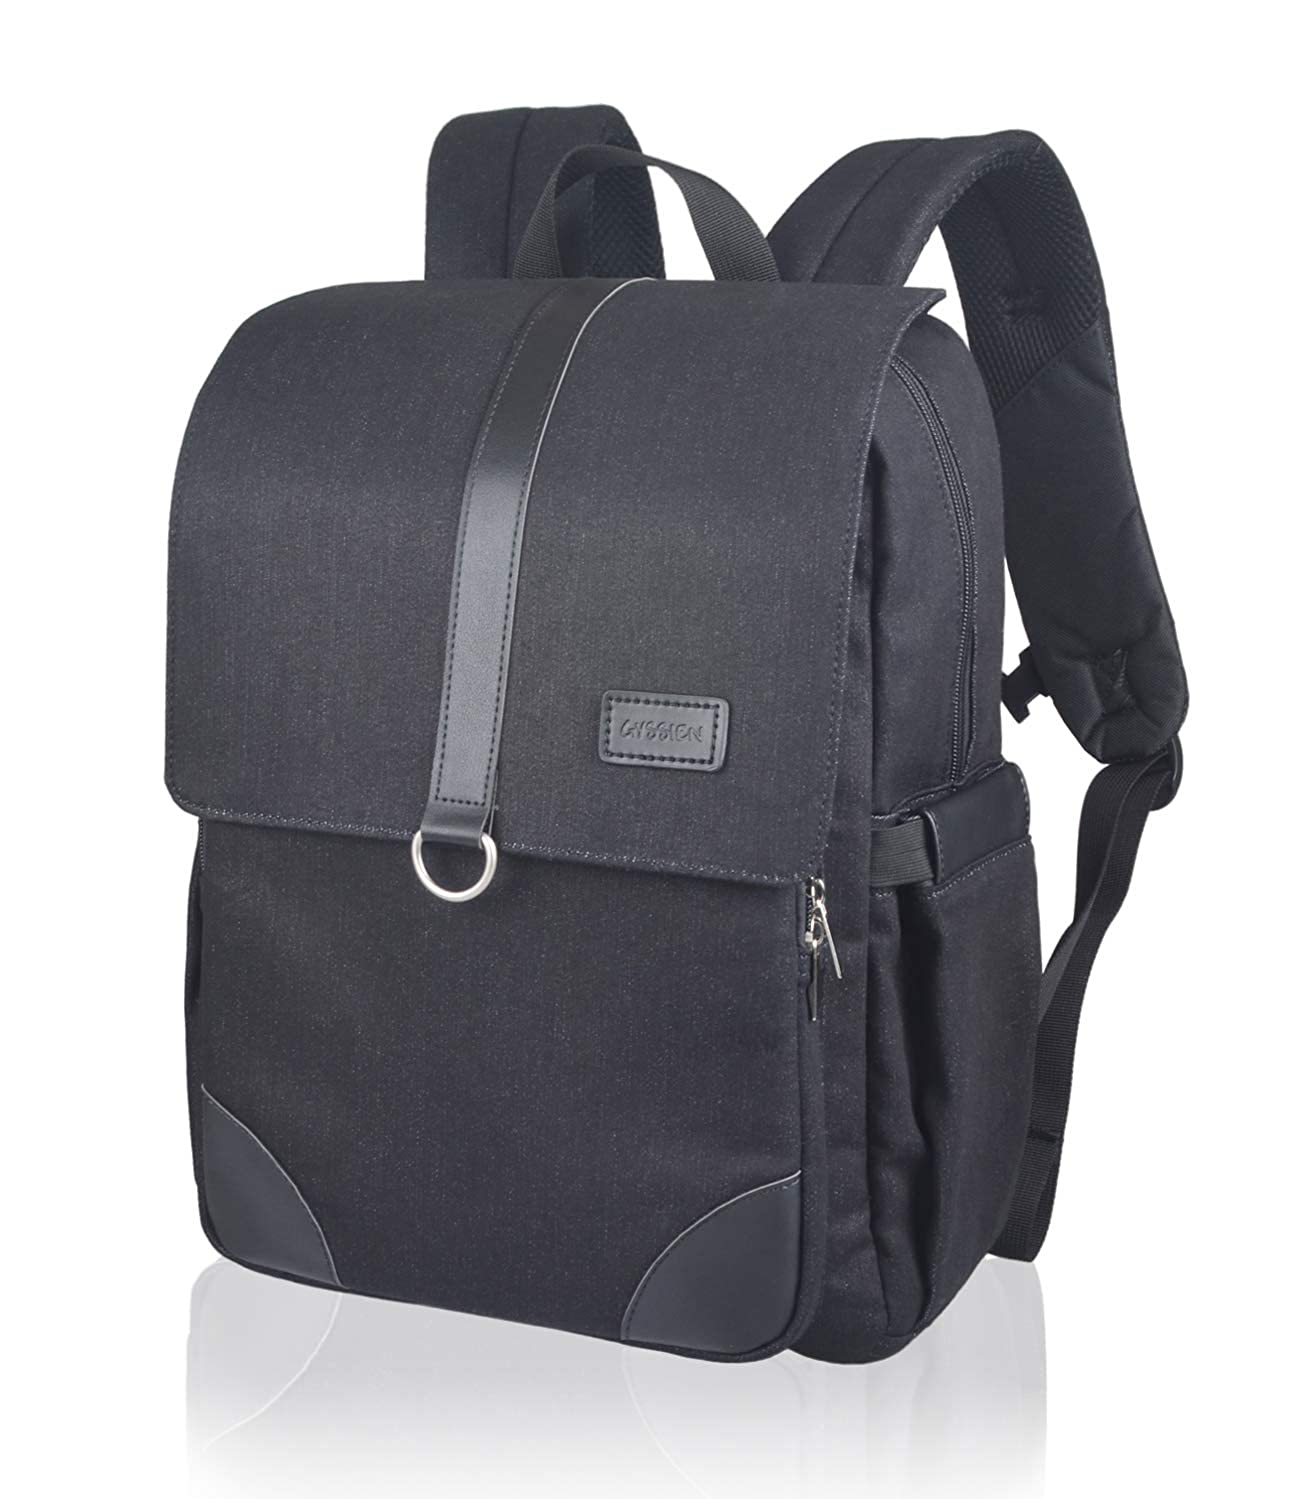 Laptop Backpack for Women Men, School College Backpack Fits 15.6 inch Notebook Fashion Casual Backpack